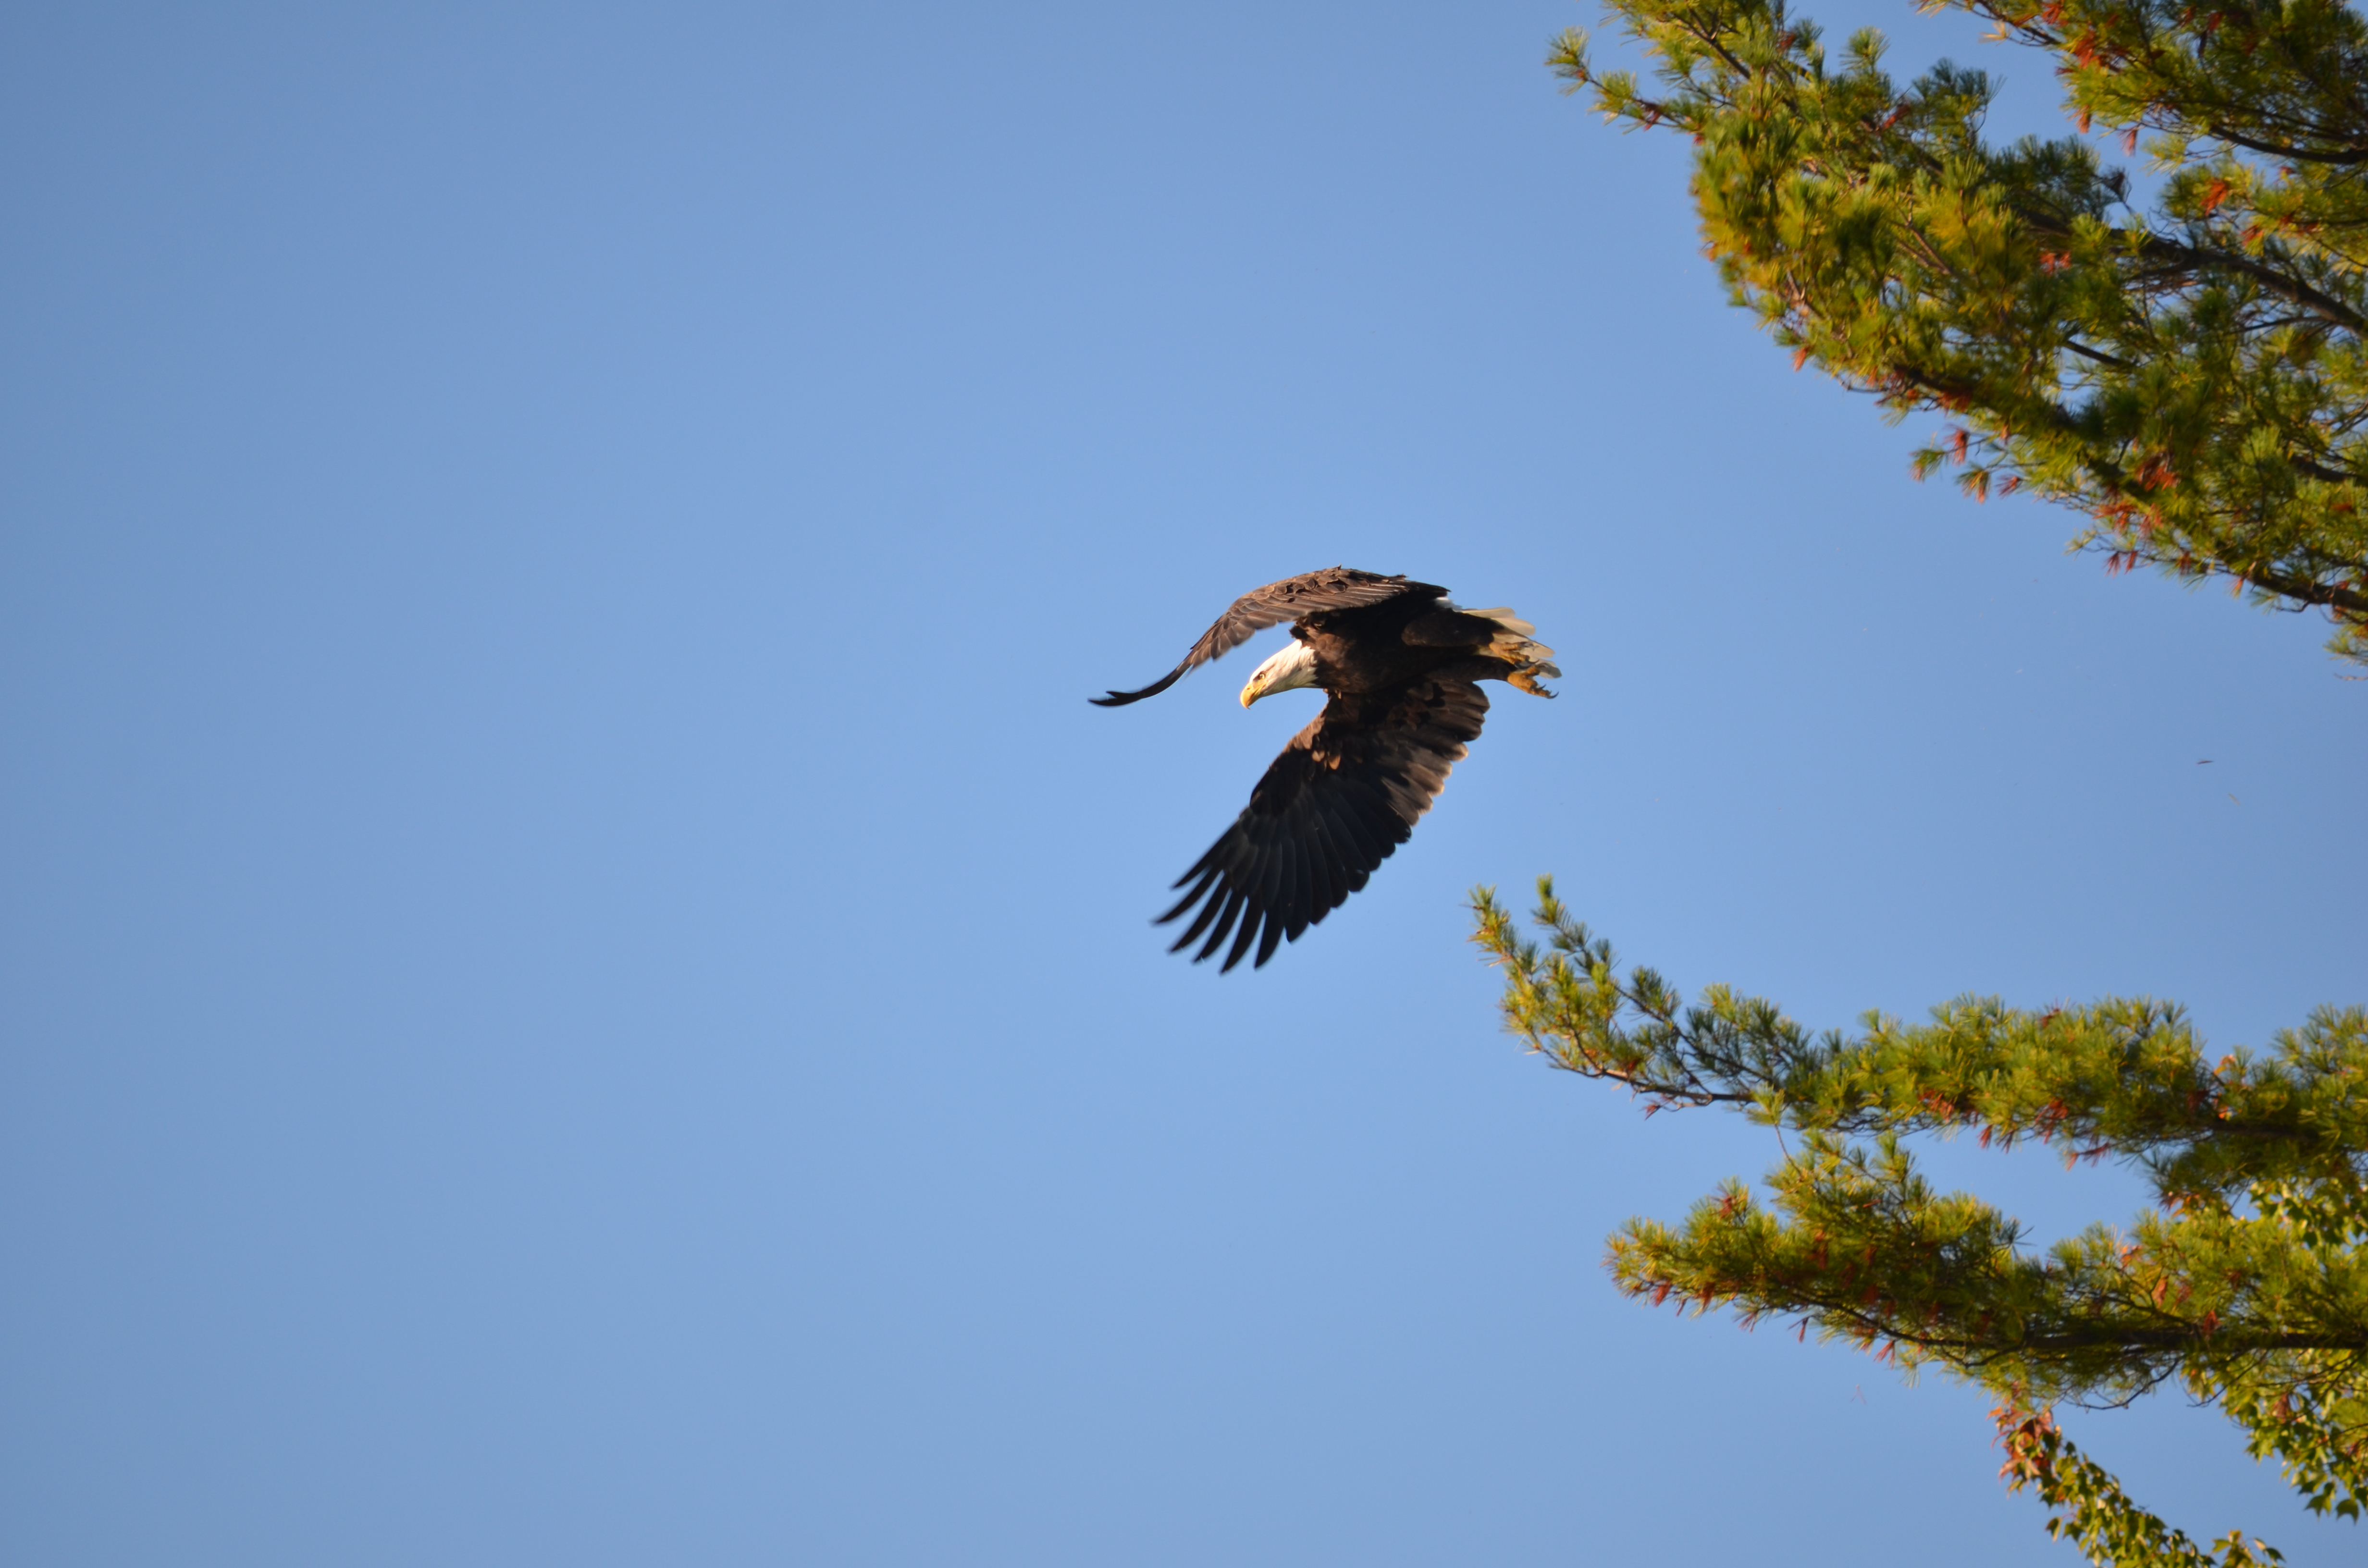 Flying from a tall tree on Winnipesaukee, the Bald Eagle is a stunning site!